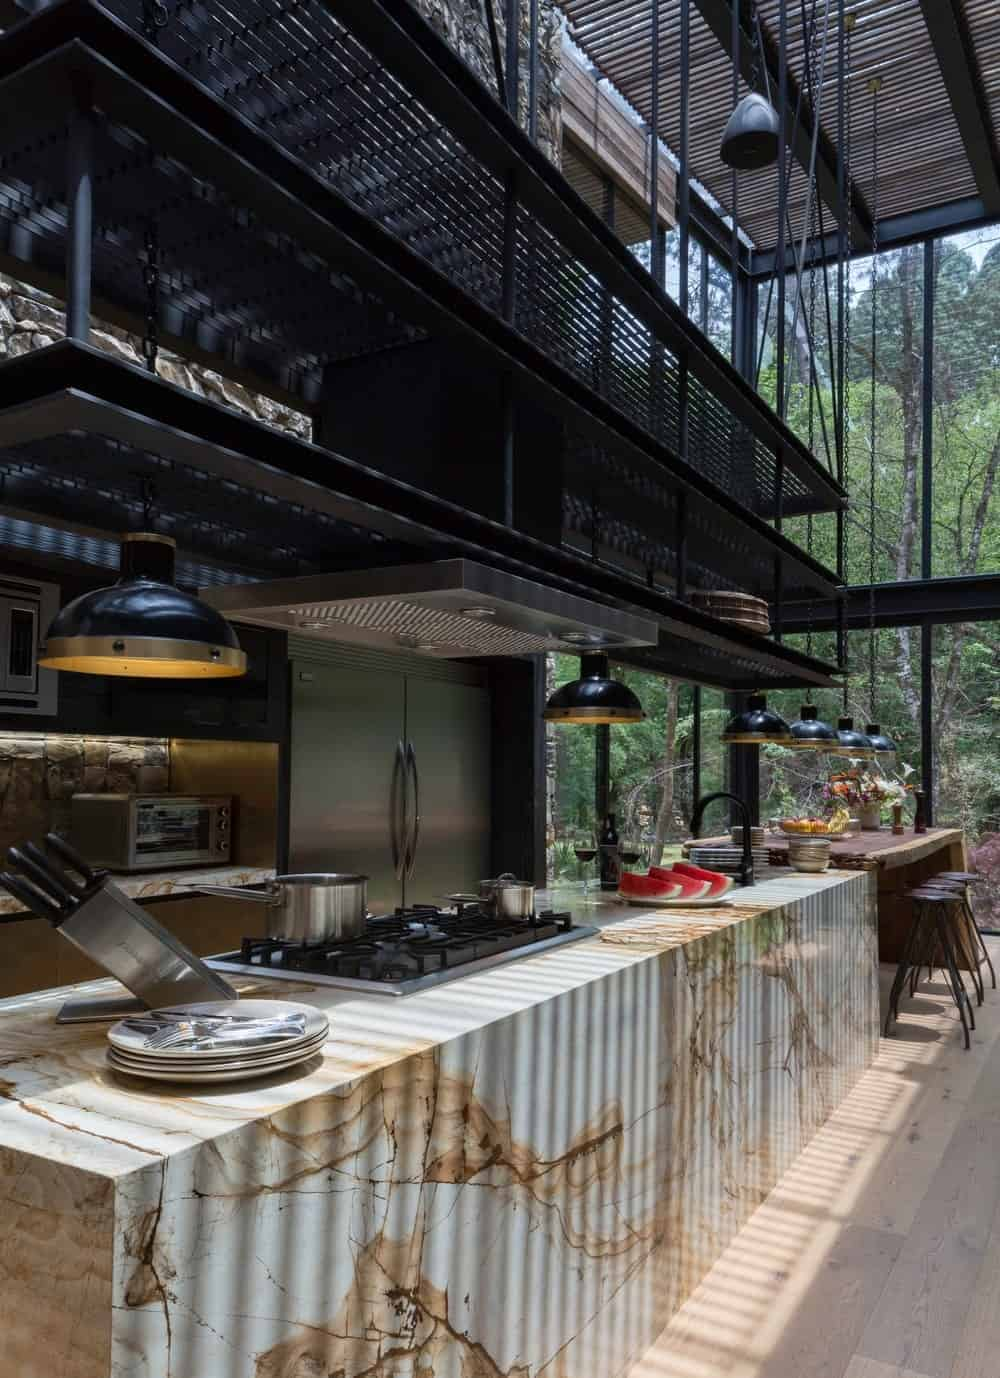 The kitchen also has an Industrial-style look with its black steel elements and charming black pendant lights. These are hanging over the large marble kitchen island that supports the stove of the cooking area topped with a vent hood held by the metal rungs.